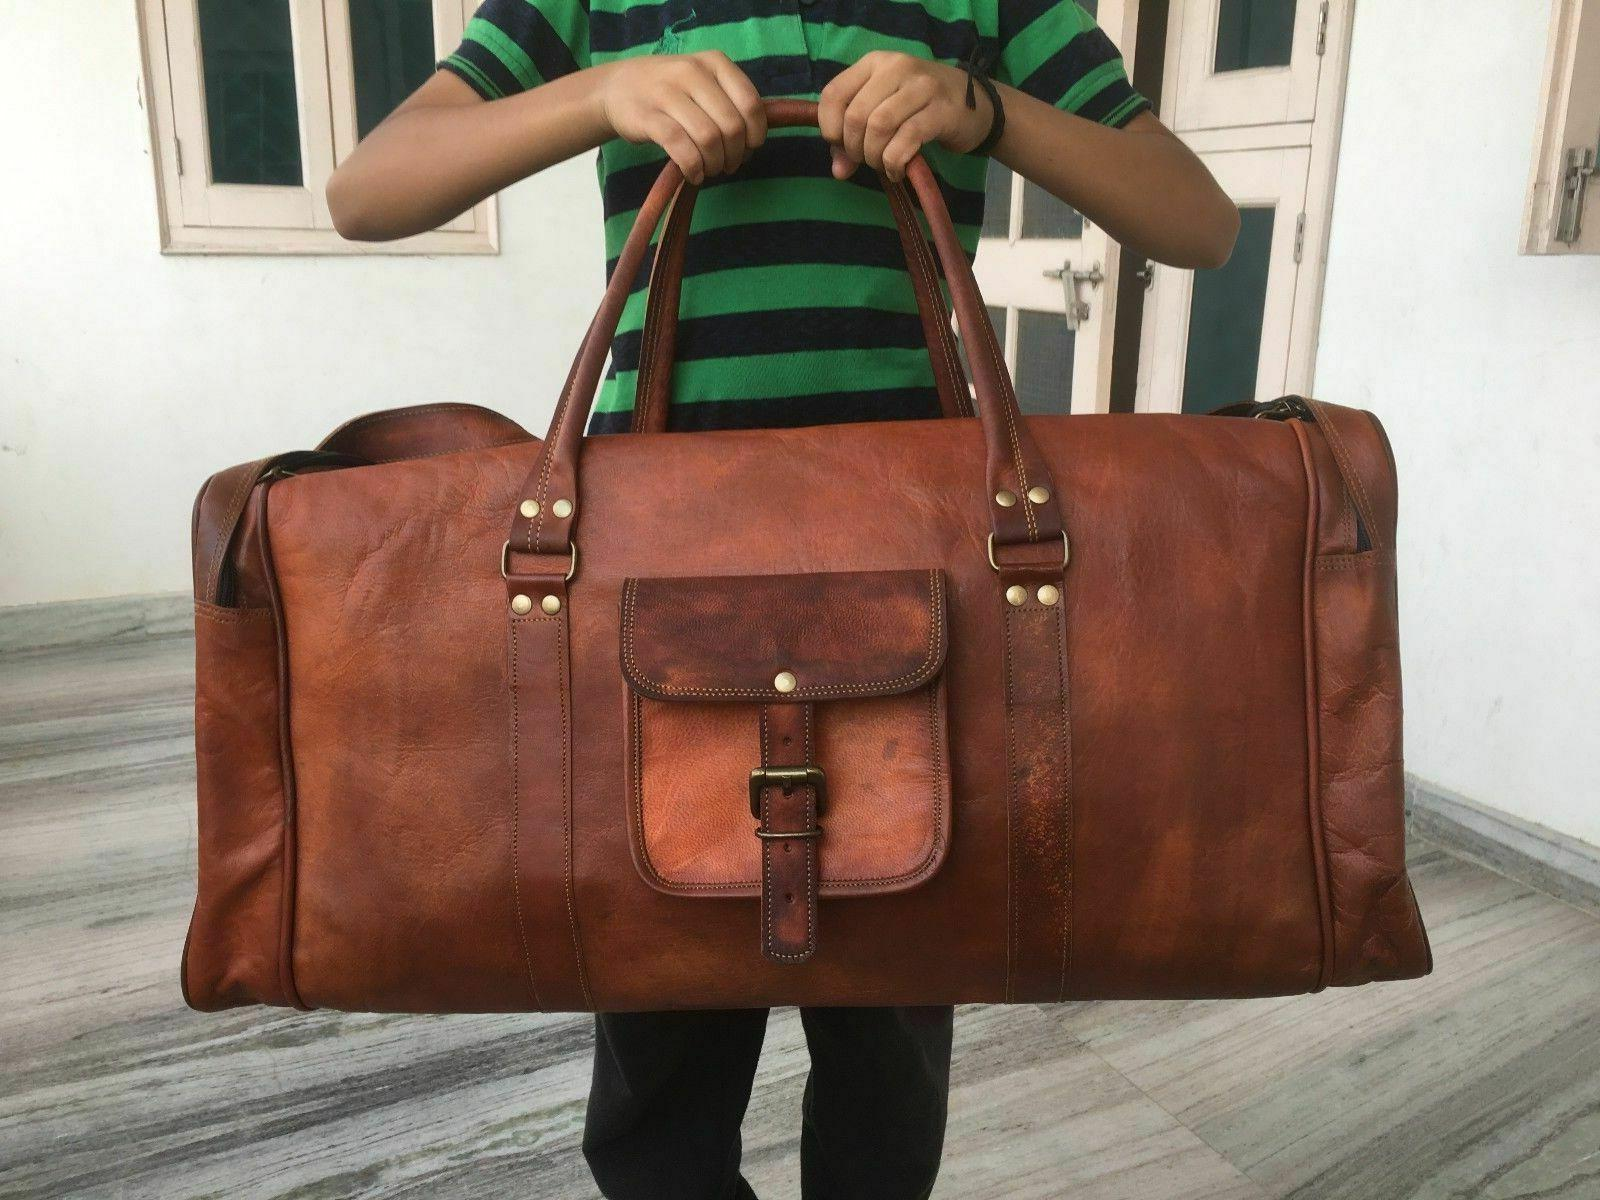 30 real unisex leather travel duffle gym